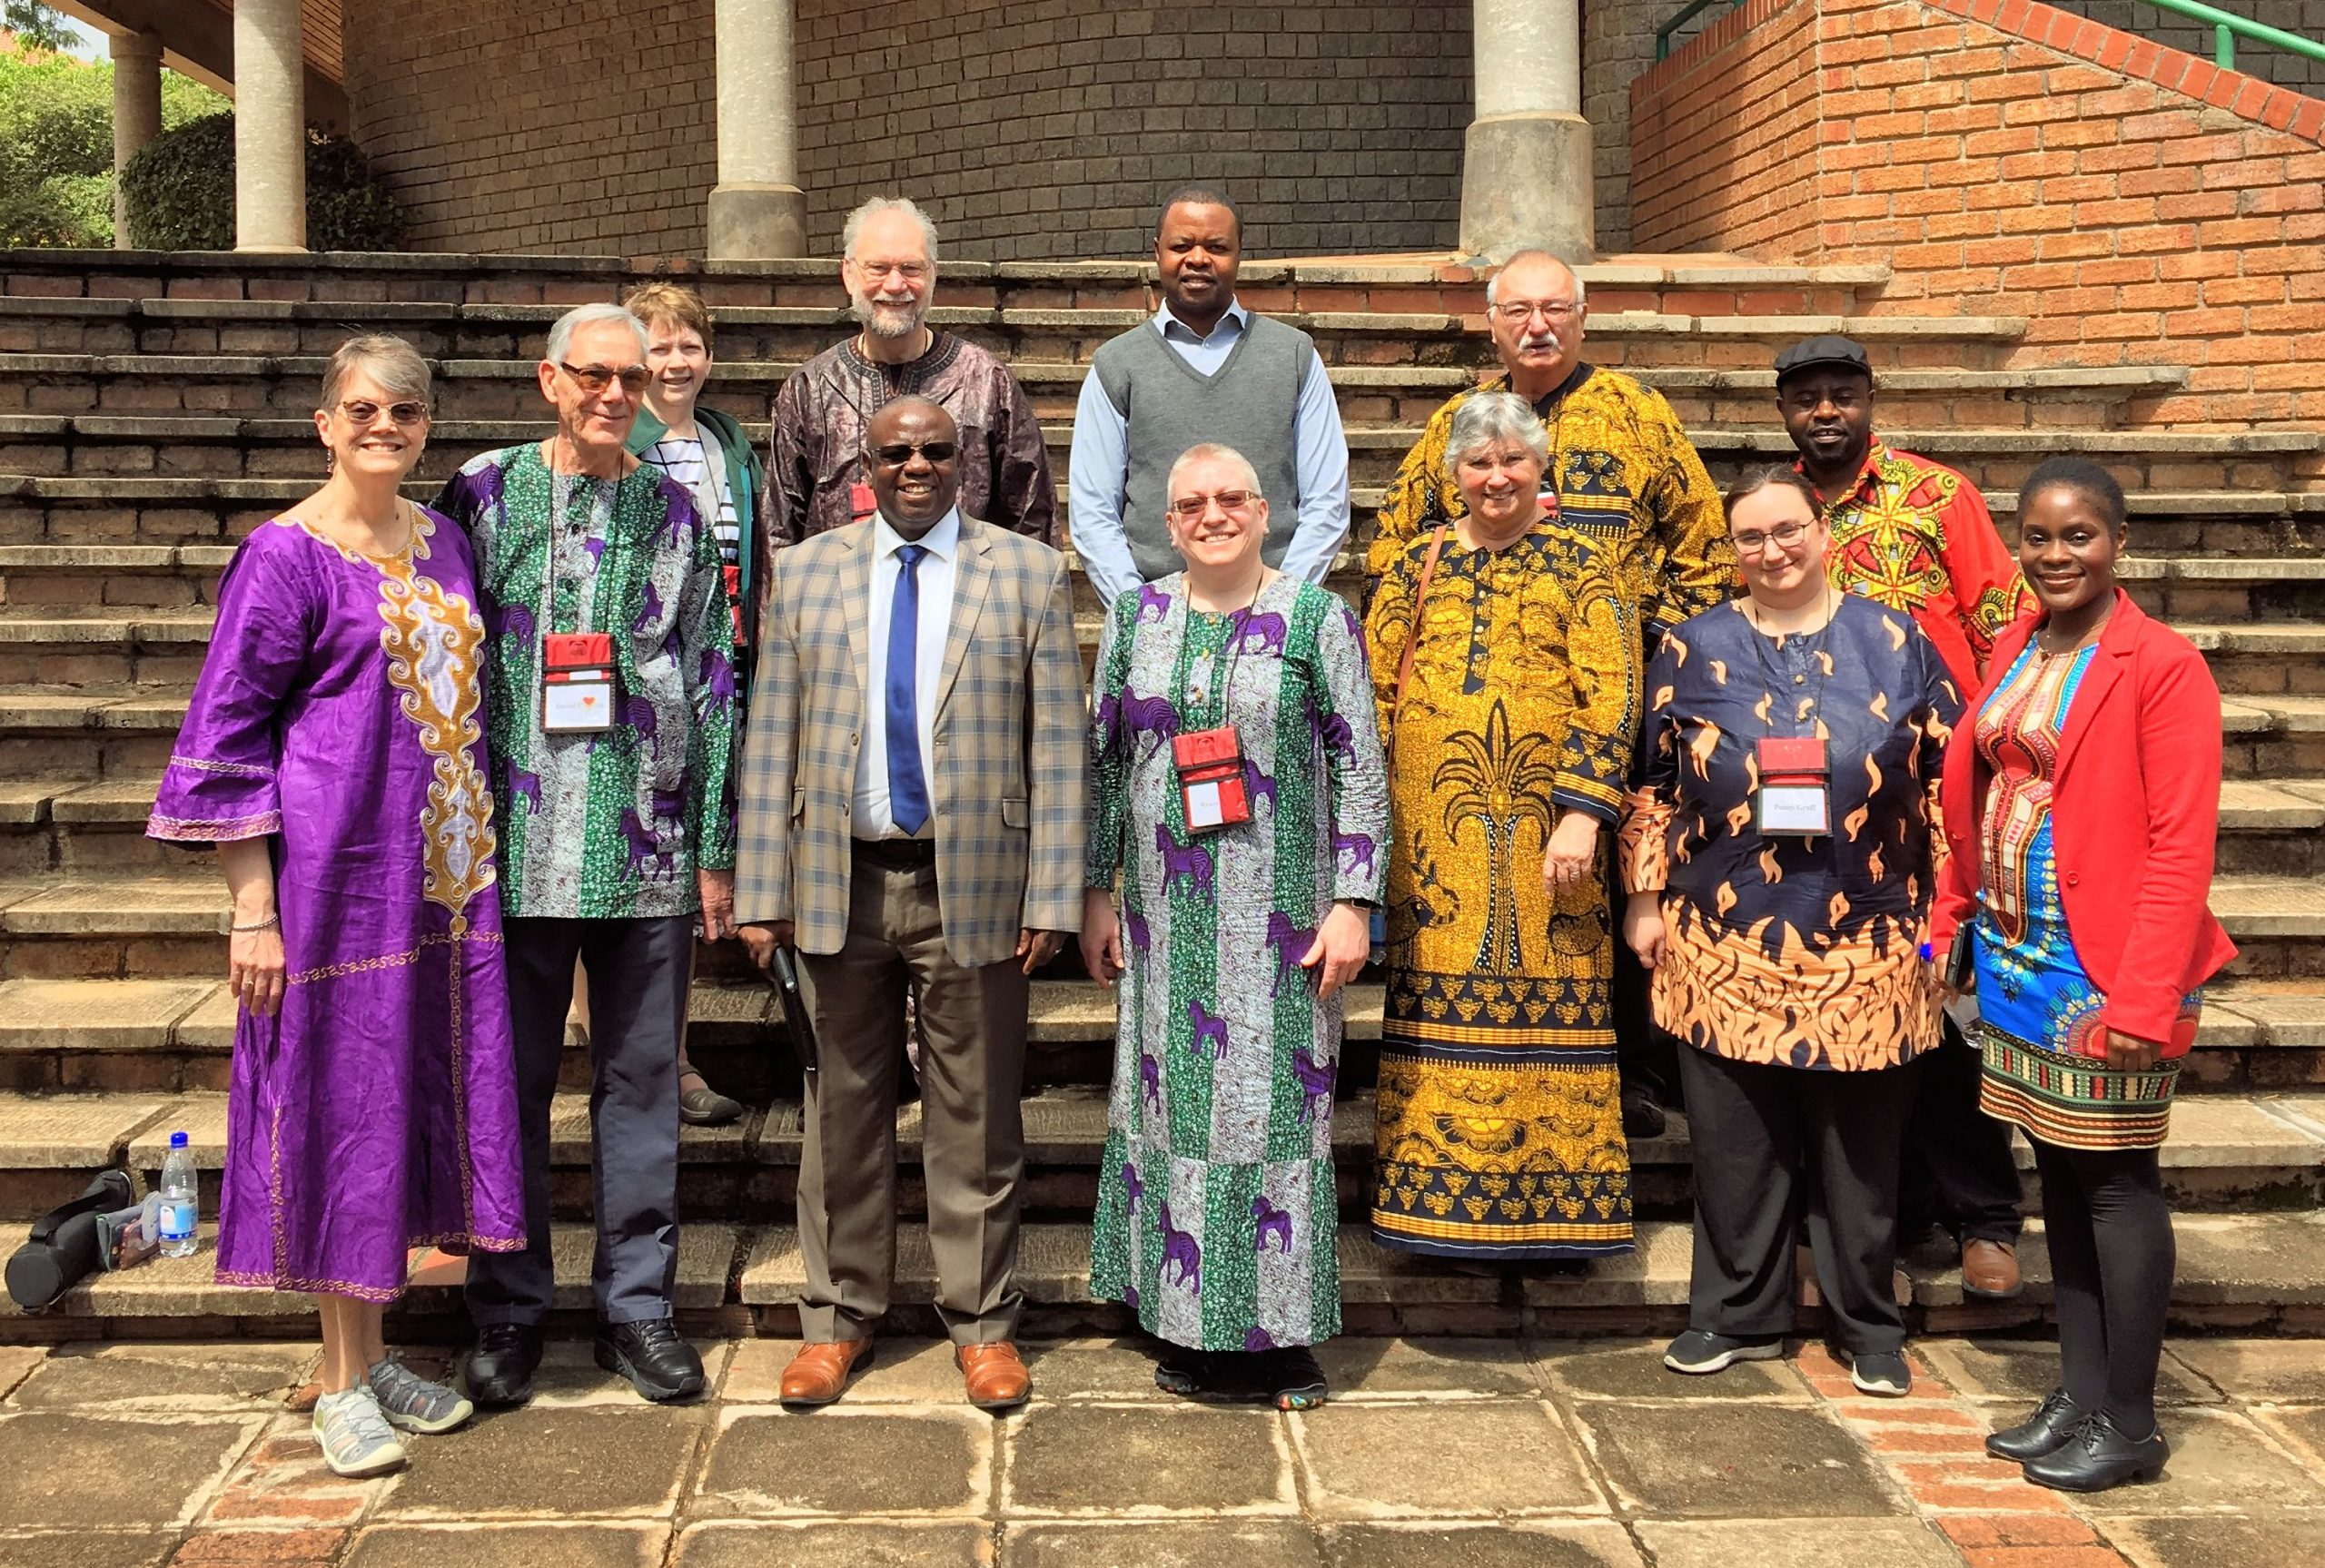 Leaders of AU in Zimbabwe welcome Michigan guests.